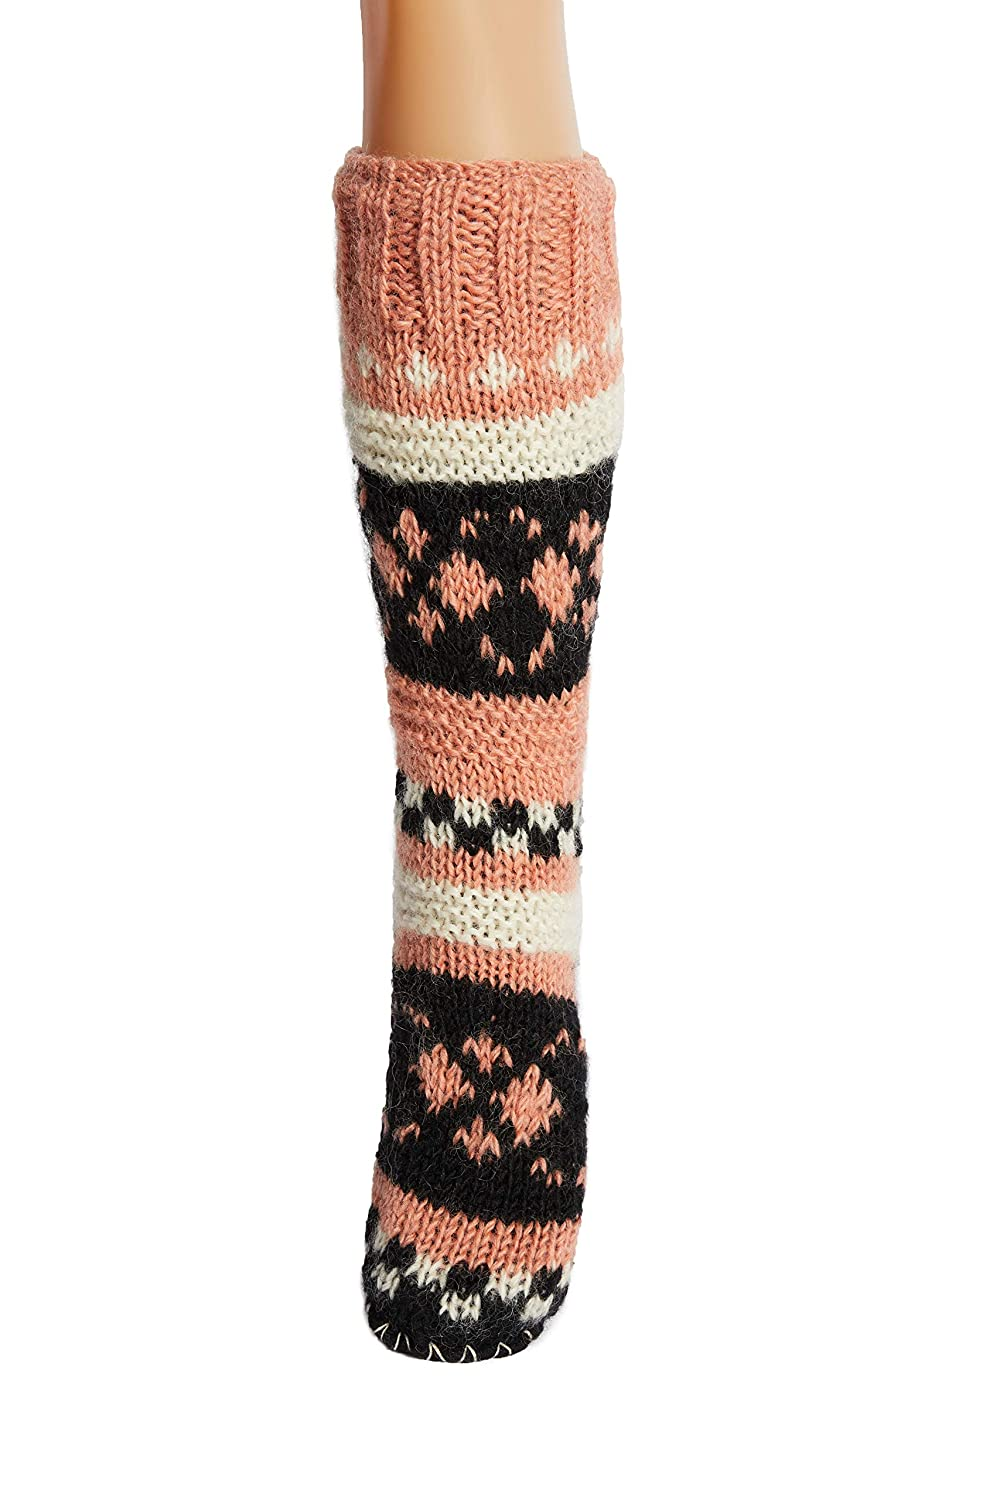 95cfa18a71586 Hand Knit Wool Fleece Lined Long Slipper Socks | Tibetan Socks